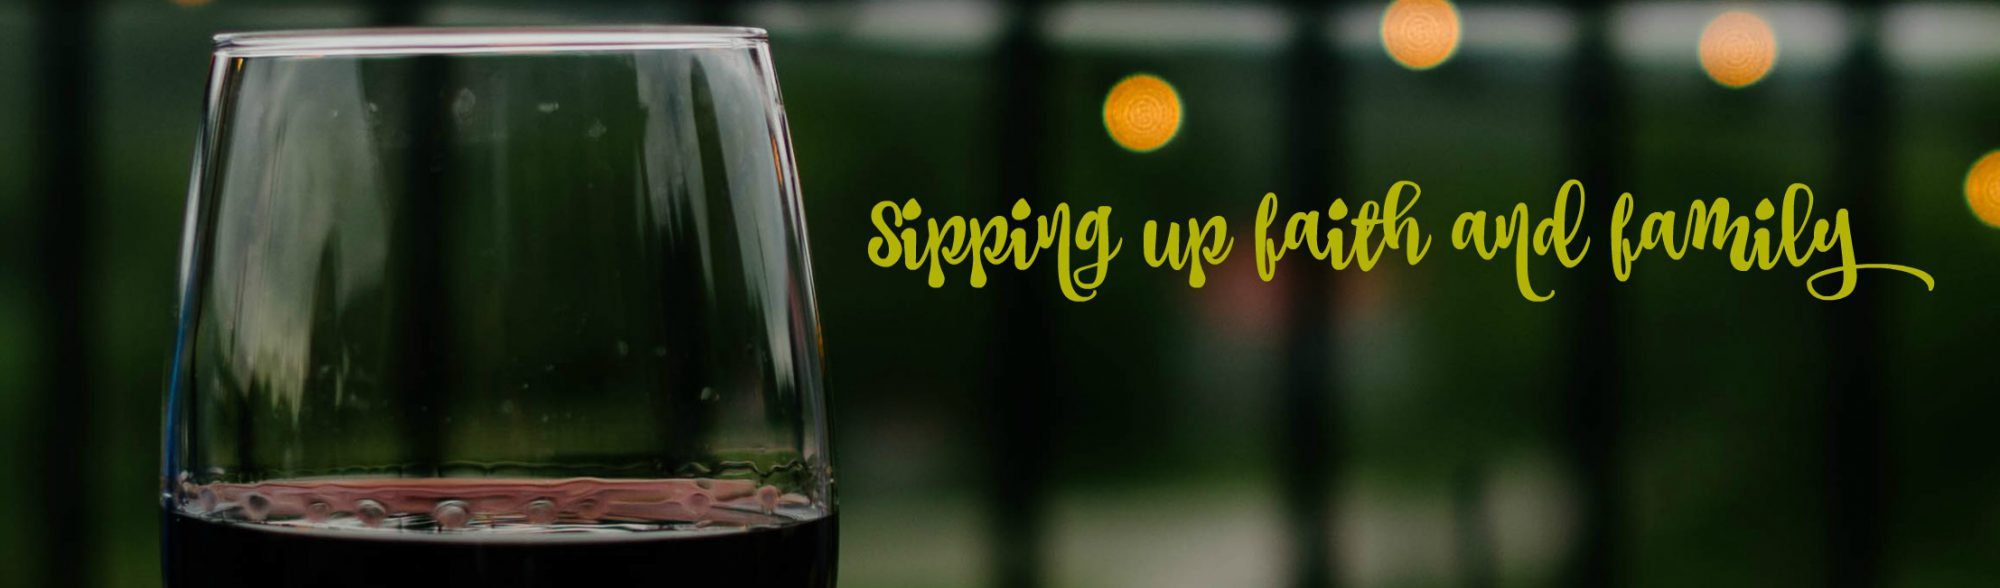 Chasing time and Drinking wine | Sipping up faith and family